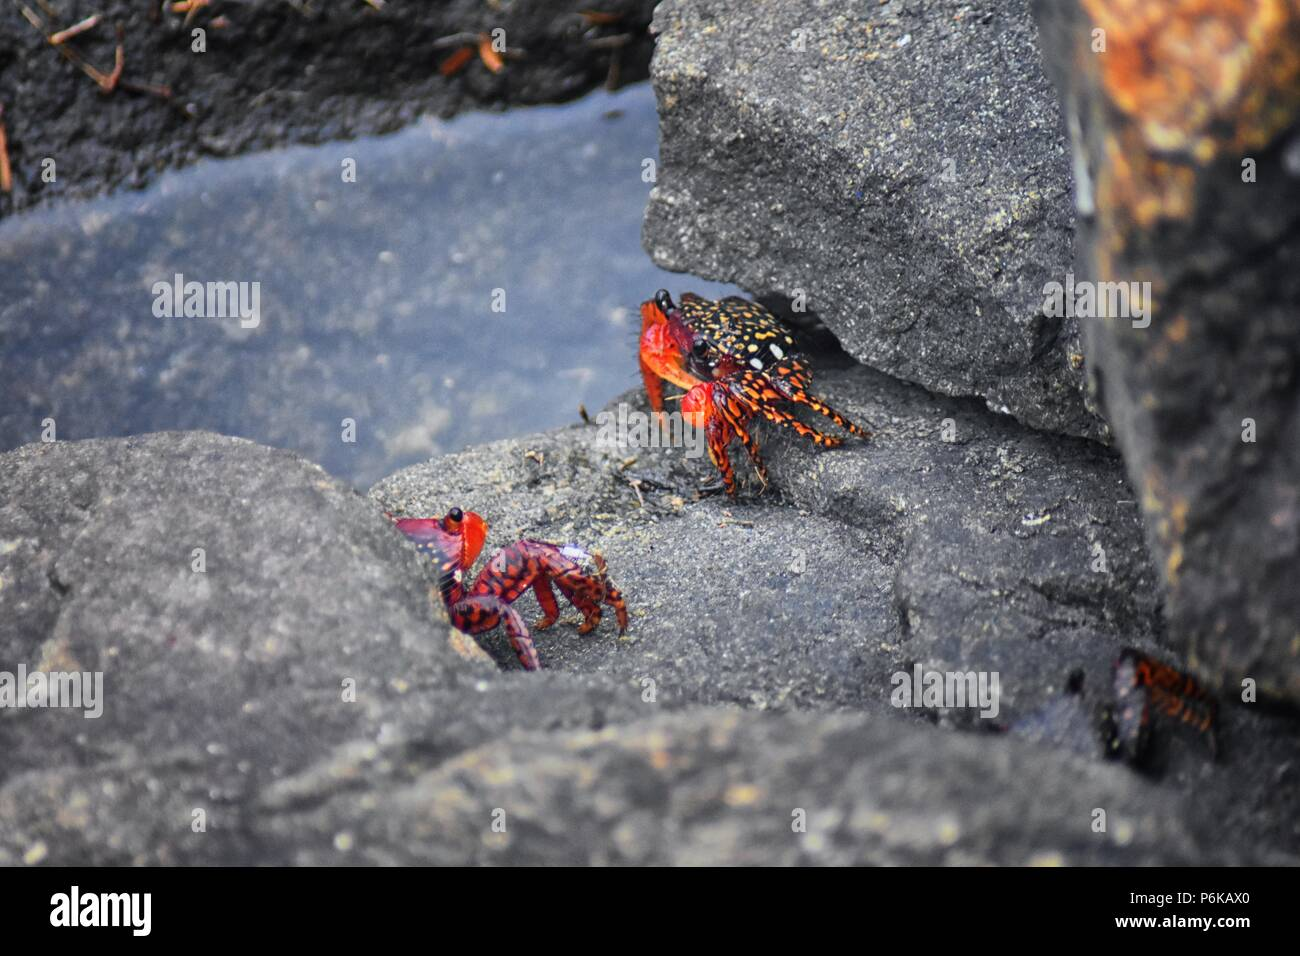 Sally Lightfoot Crab or red rock crab, scientific name Grapsus grapsus on rocks in Puerto Vallarta Marina, Mexico. Close up view. Stock Photo